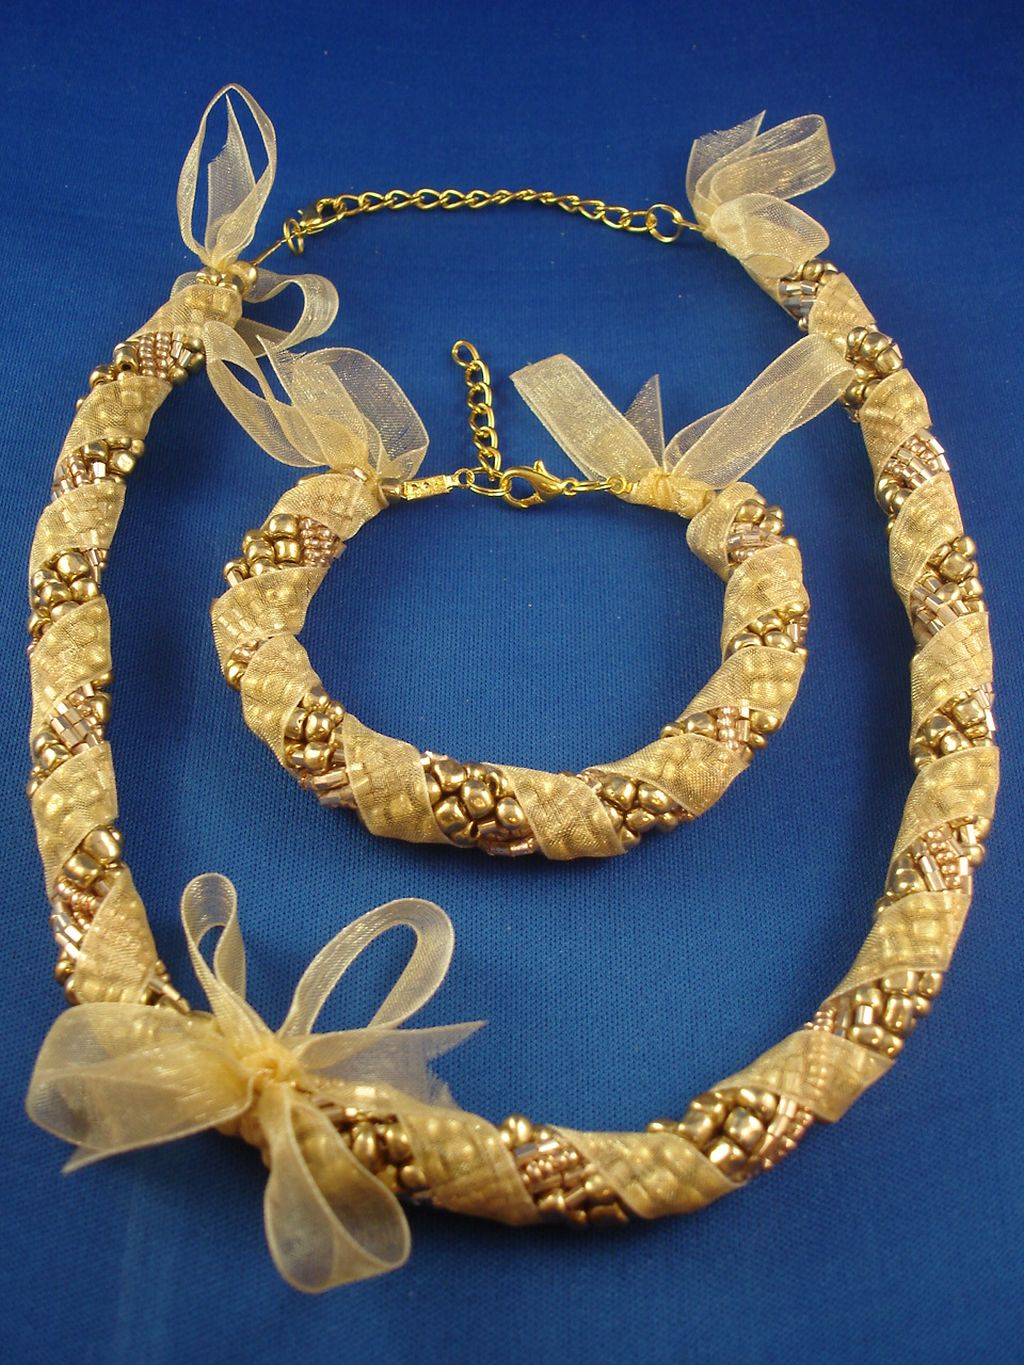 Yellow Ribbon Set of Necklace & Bracelet, Eight Twisted Strings of Beads, European Fashion Jewelry